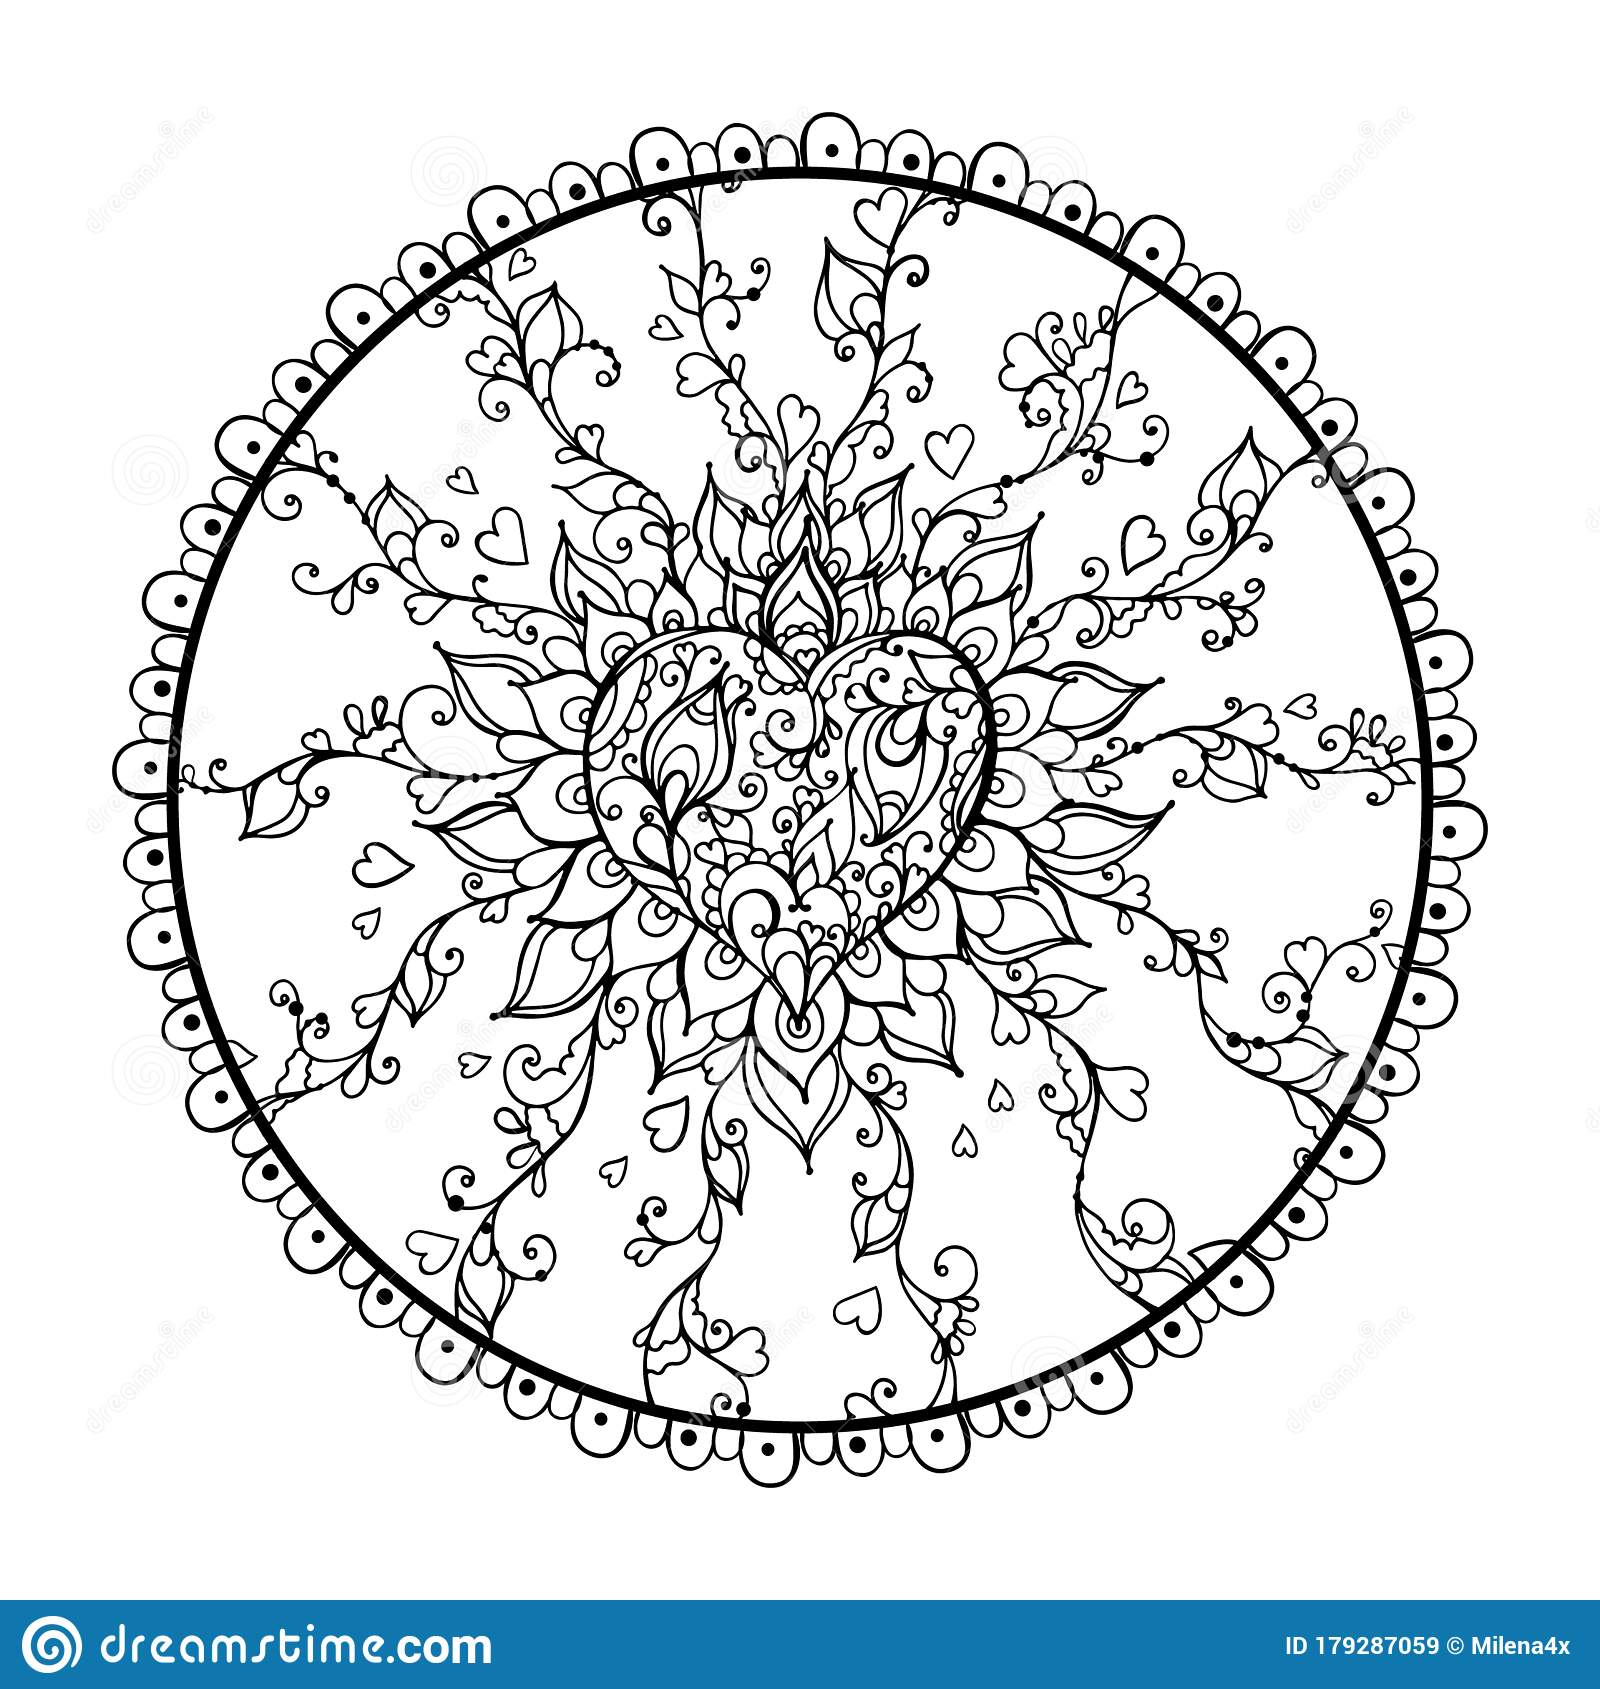 Mandala Art For Meditation Color Therapy Adult Coloring Pages Stress Relief And Relaxation Heart For Valentine S Day Stock Vector Illustration Of Happy Frame 179287059